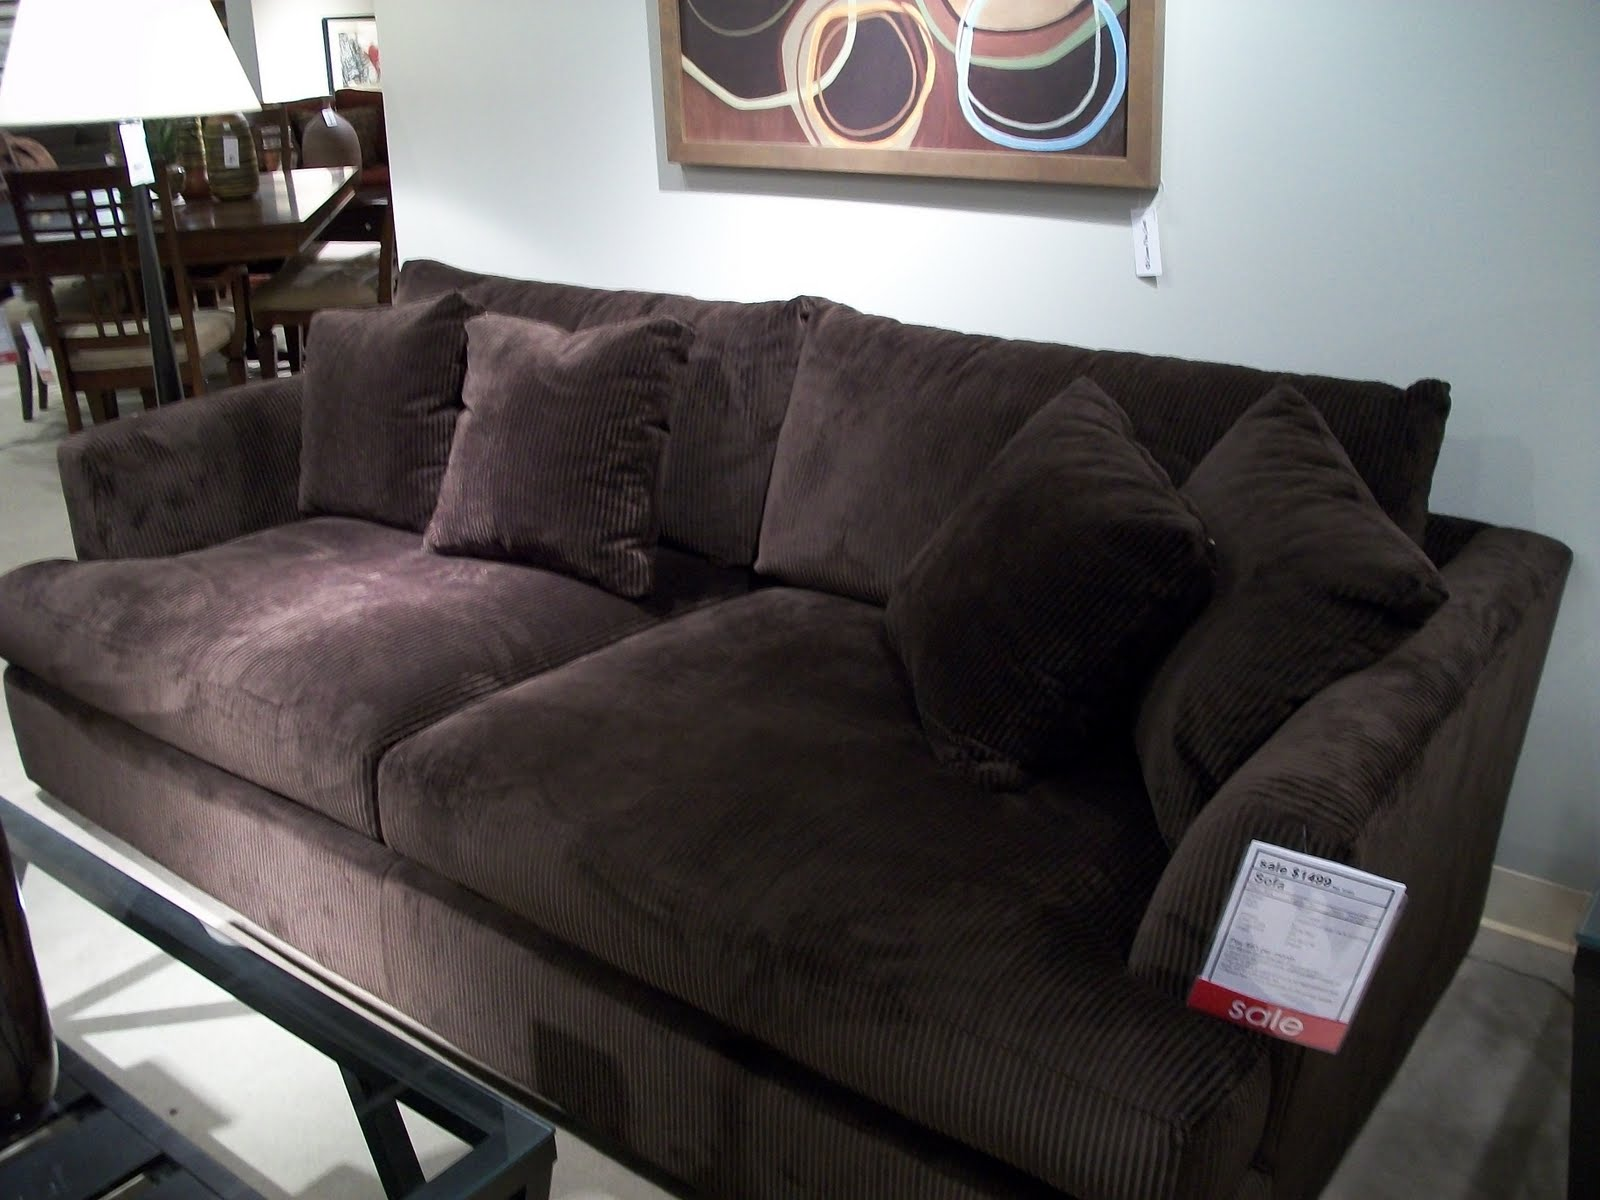 Comfortable Couches For Family Rooms Part - 19: I Want A Couch That Can Fit Two People Laying Next To One Another. And, It  Is Required To Be Comfortable Enough For Afternoon Naps. Every Family Room  ...